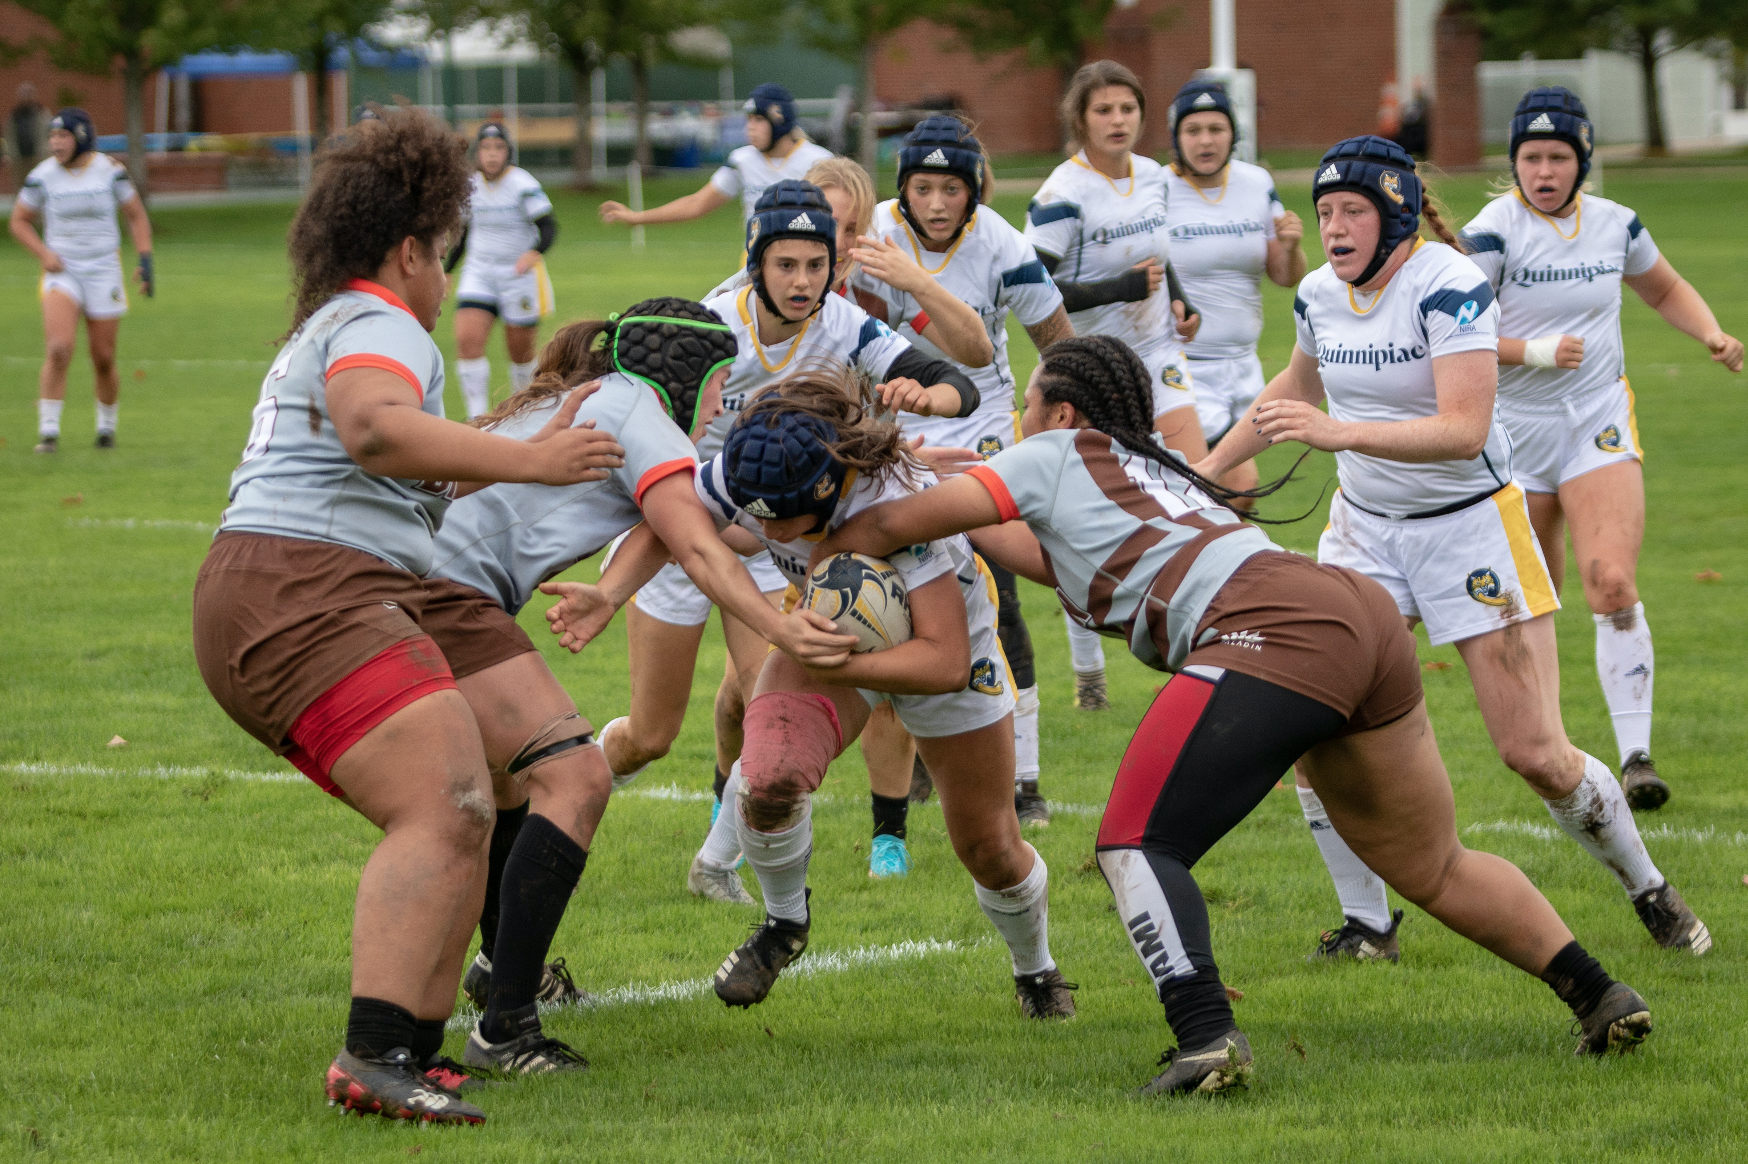 Quinnipiac rugby overpowers Brown in 85-3 victory